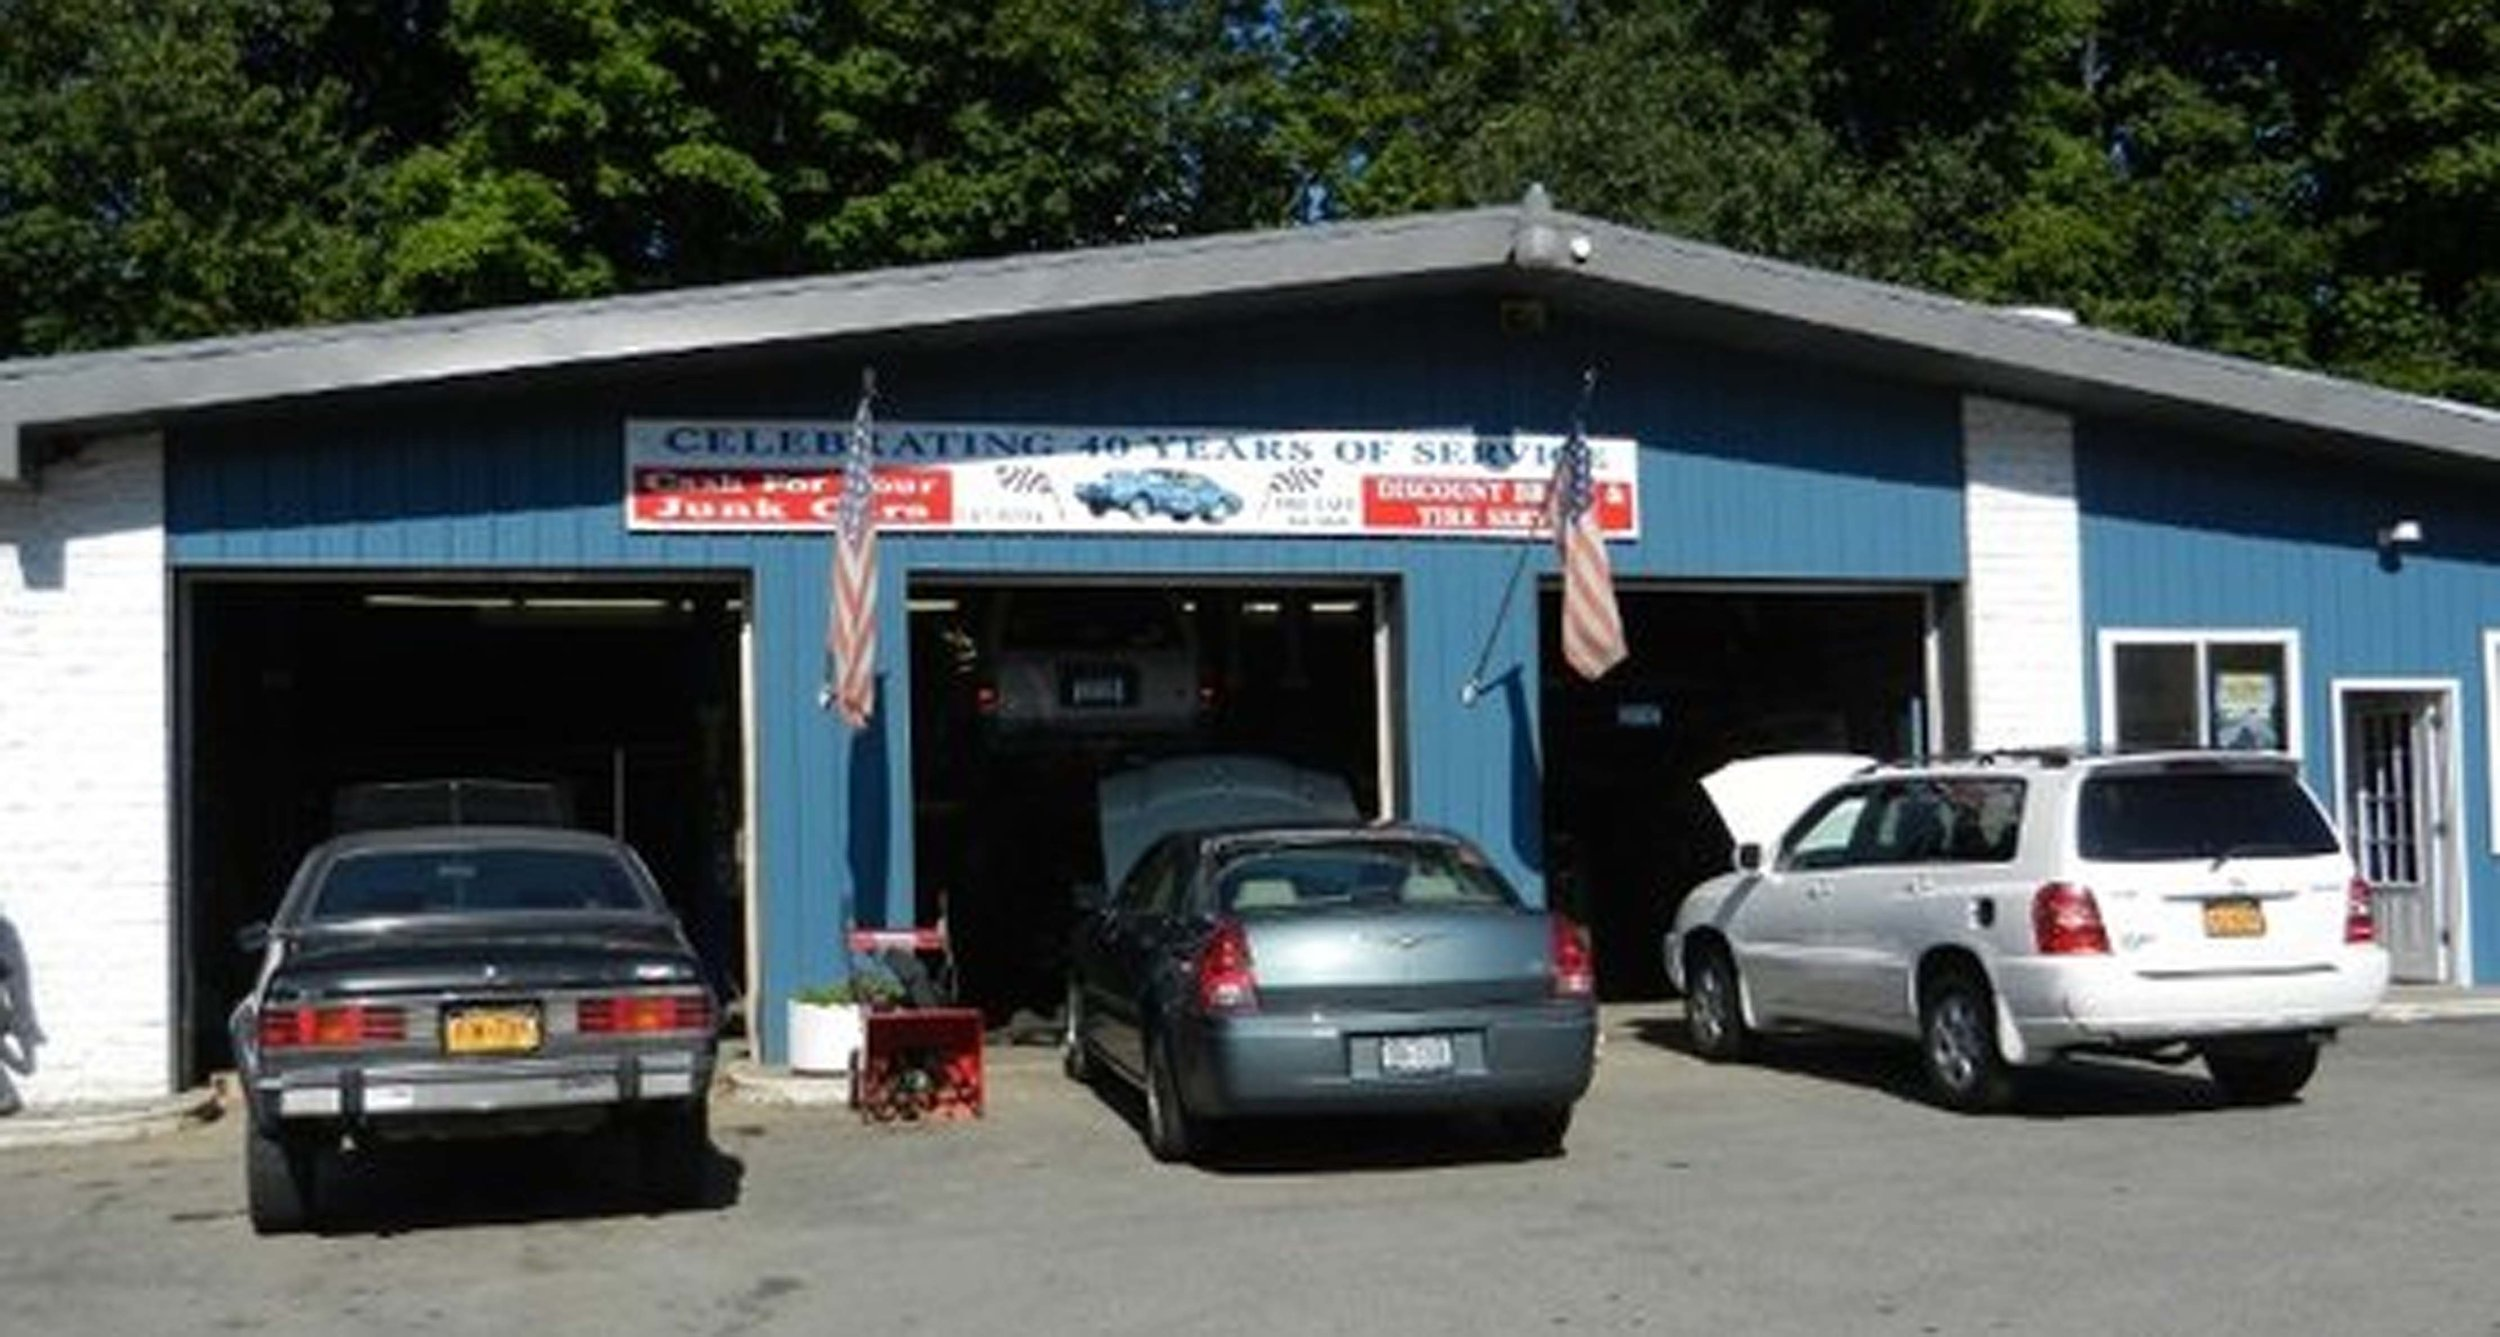 C&V Discount Tire & BrakeFamily Owned & Operated for 48 YearsComplete Automotive Service & Repair - Corner of Rts. 52 & 82, Fishkill, NY845.896.9060